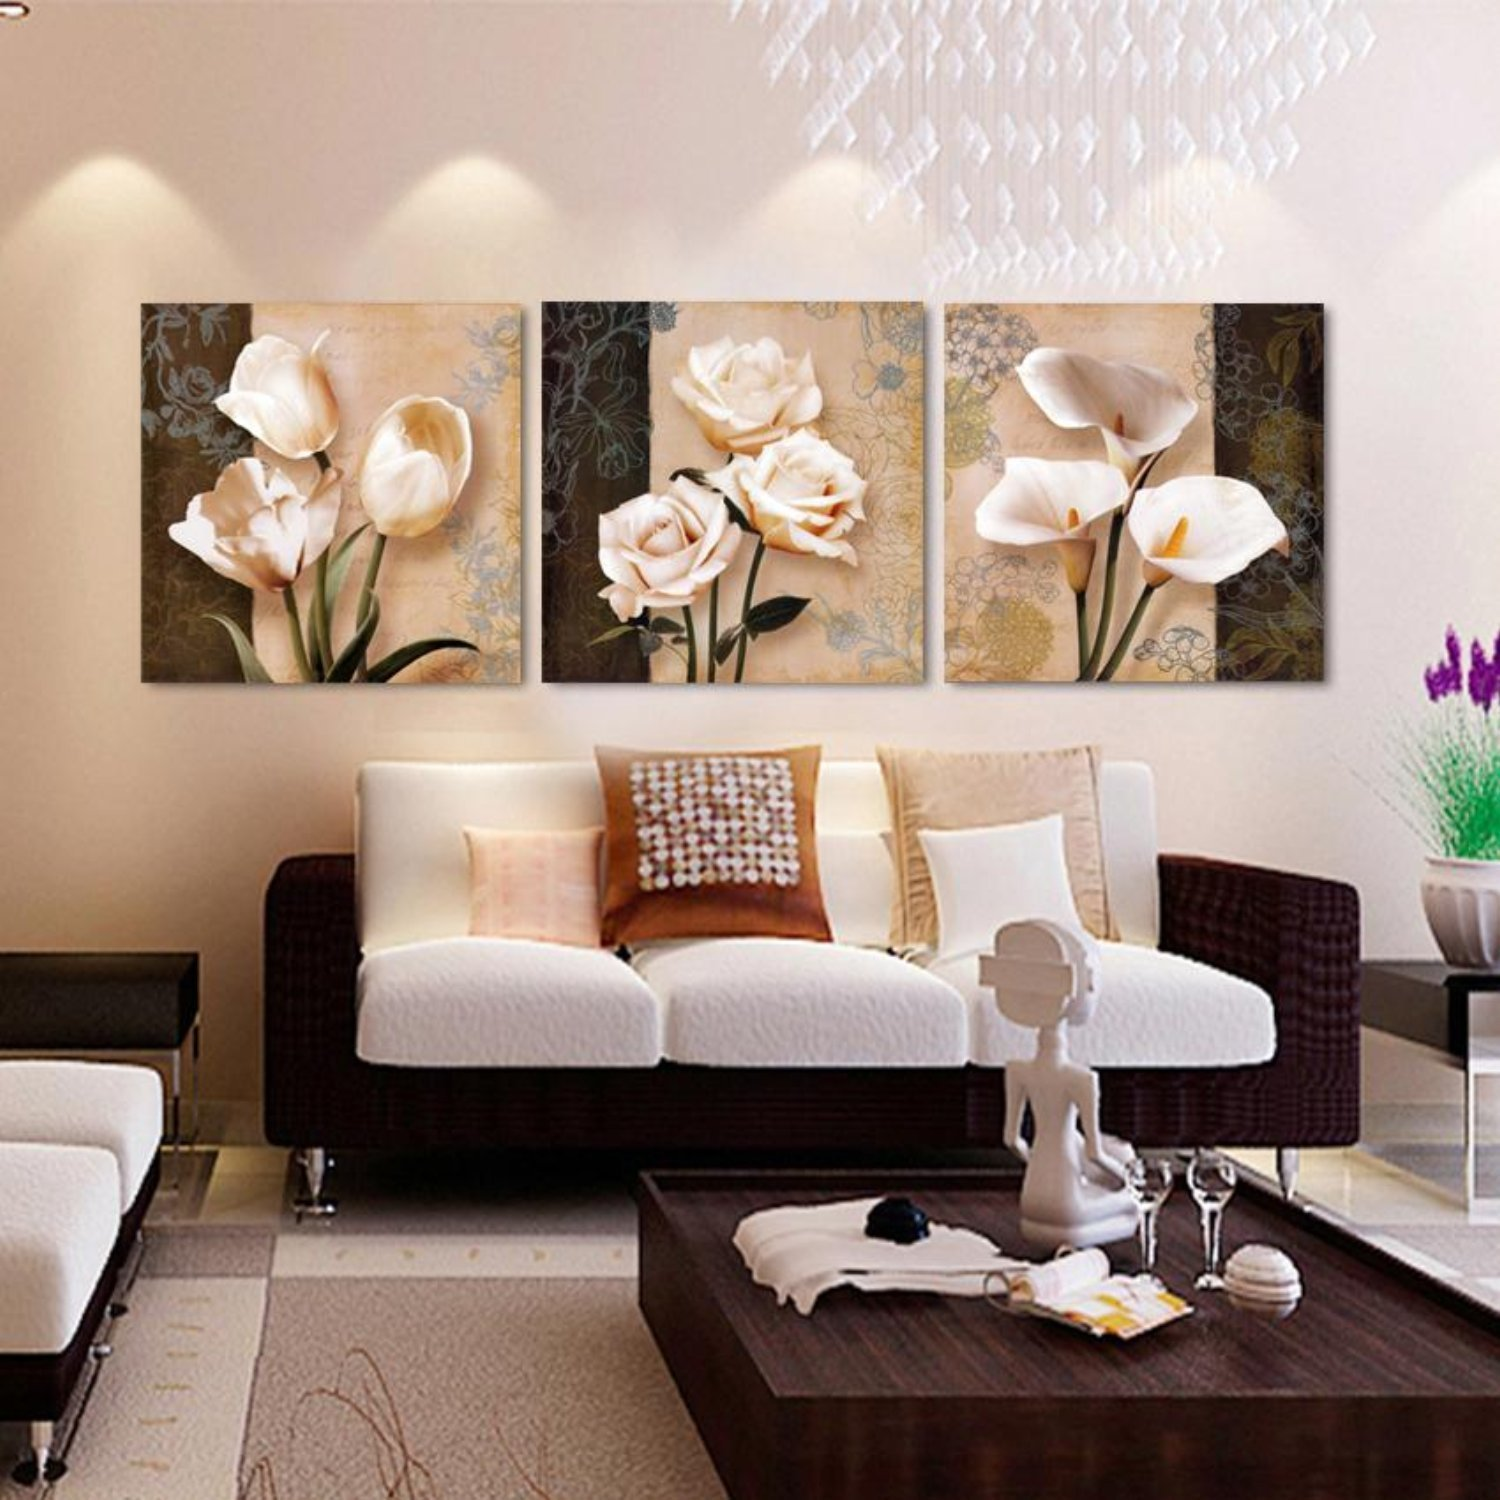 Amazoncom Hd Printed Pictures Canvas Wall Art Living Room Home